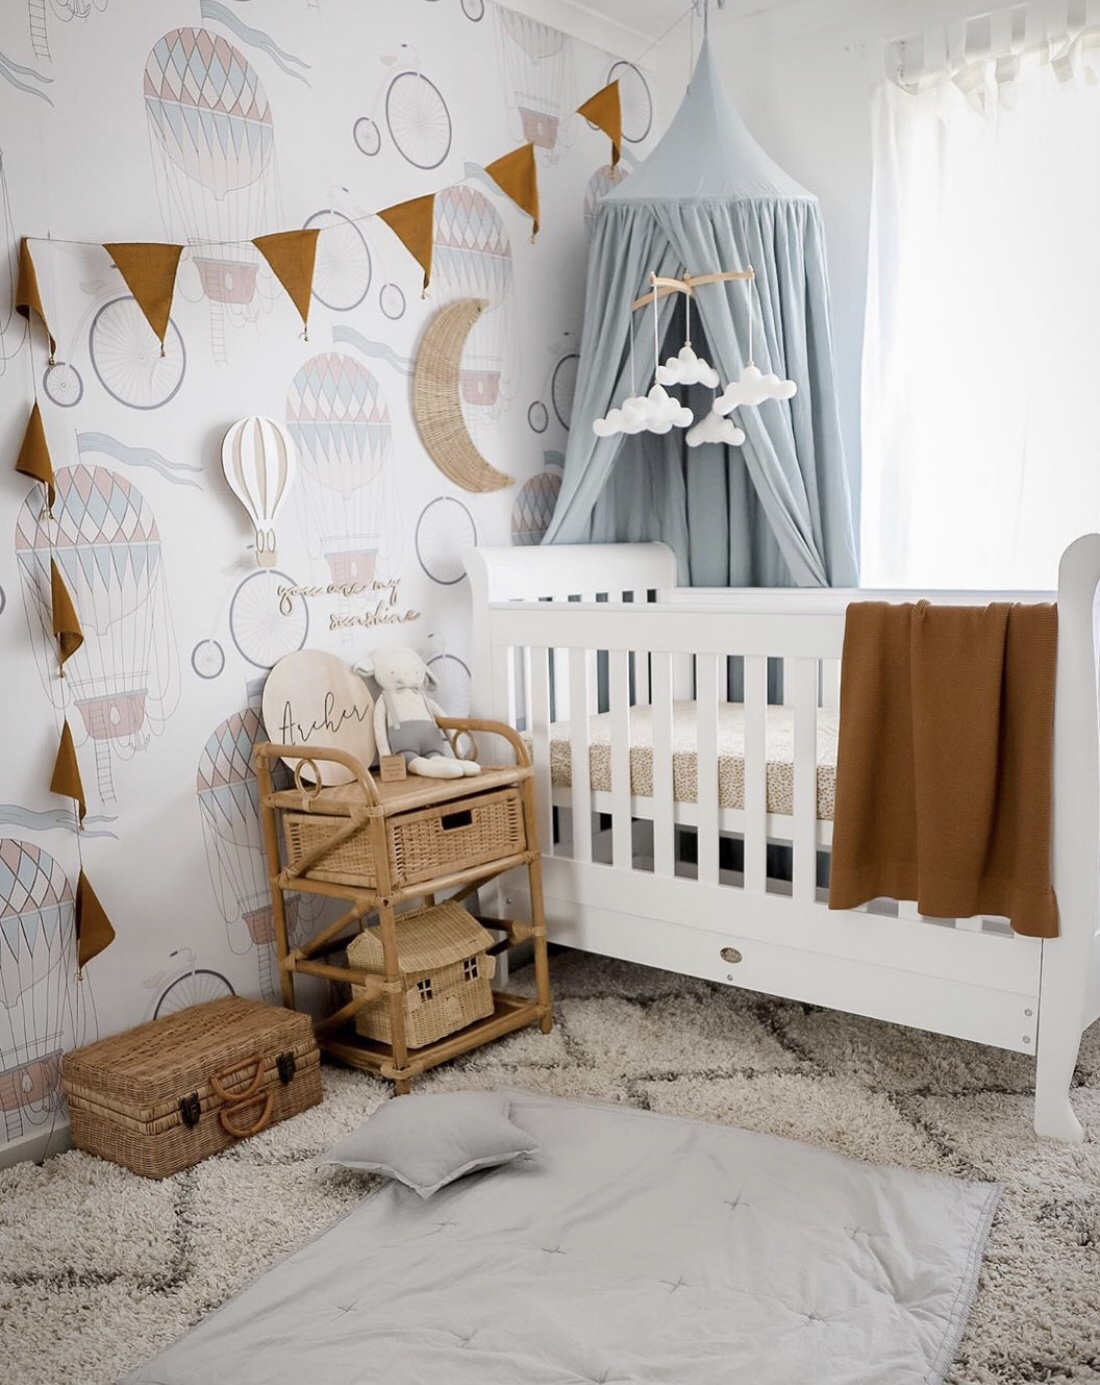 Australian baby nursery white walls with wall decals kmart big w boori cot white